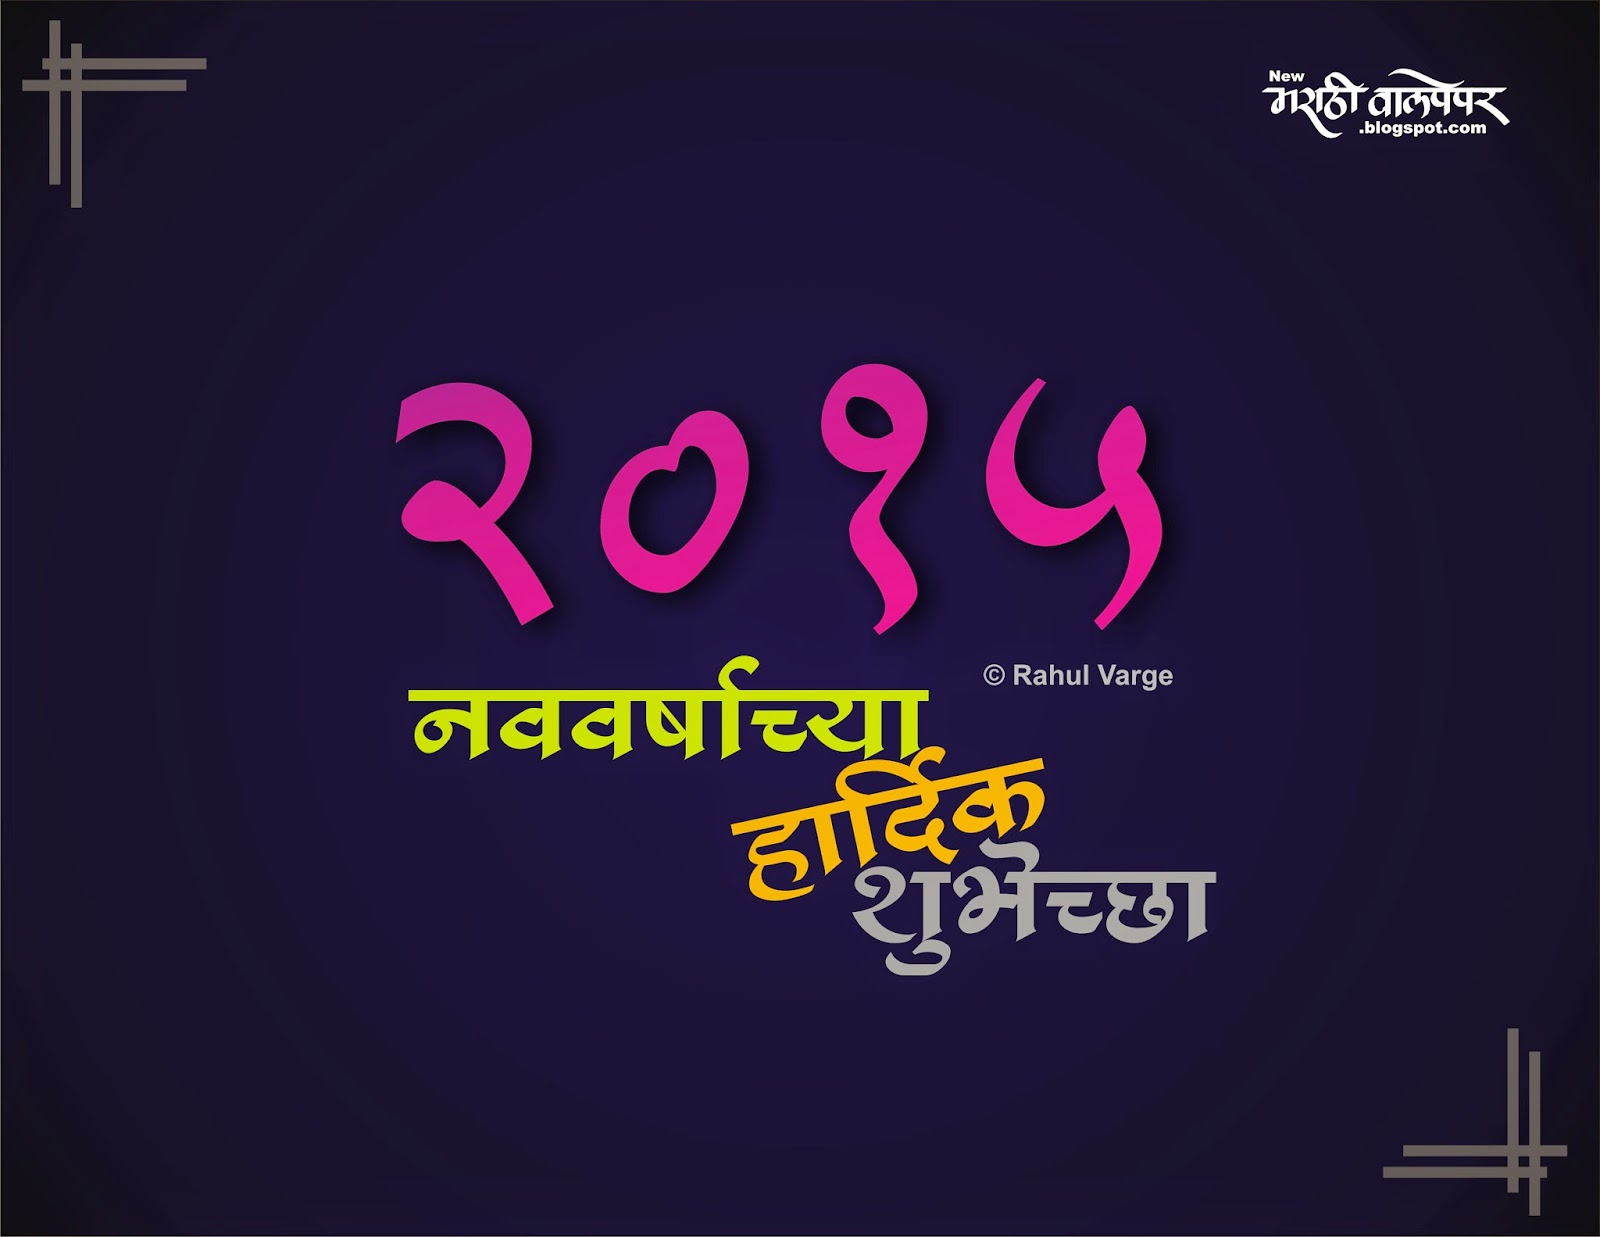 New Year 2015   New Marathi Wallpaper   Marathi Calligraphy 2015 2Bnew 2Byear 2Bmarathi 2Bwallpaper 2B1      icon18 wrench allbkg  Tags  New  year